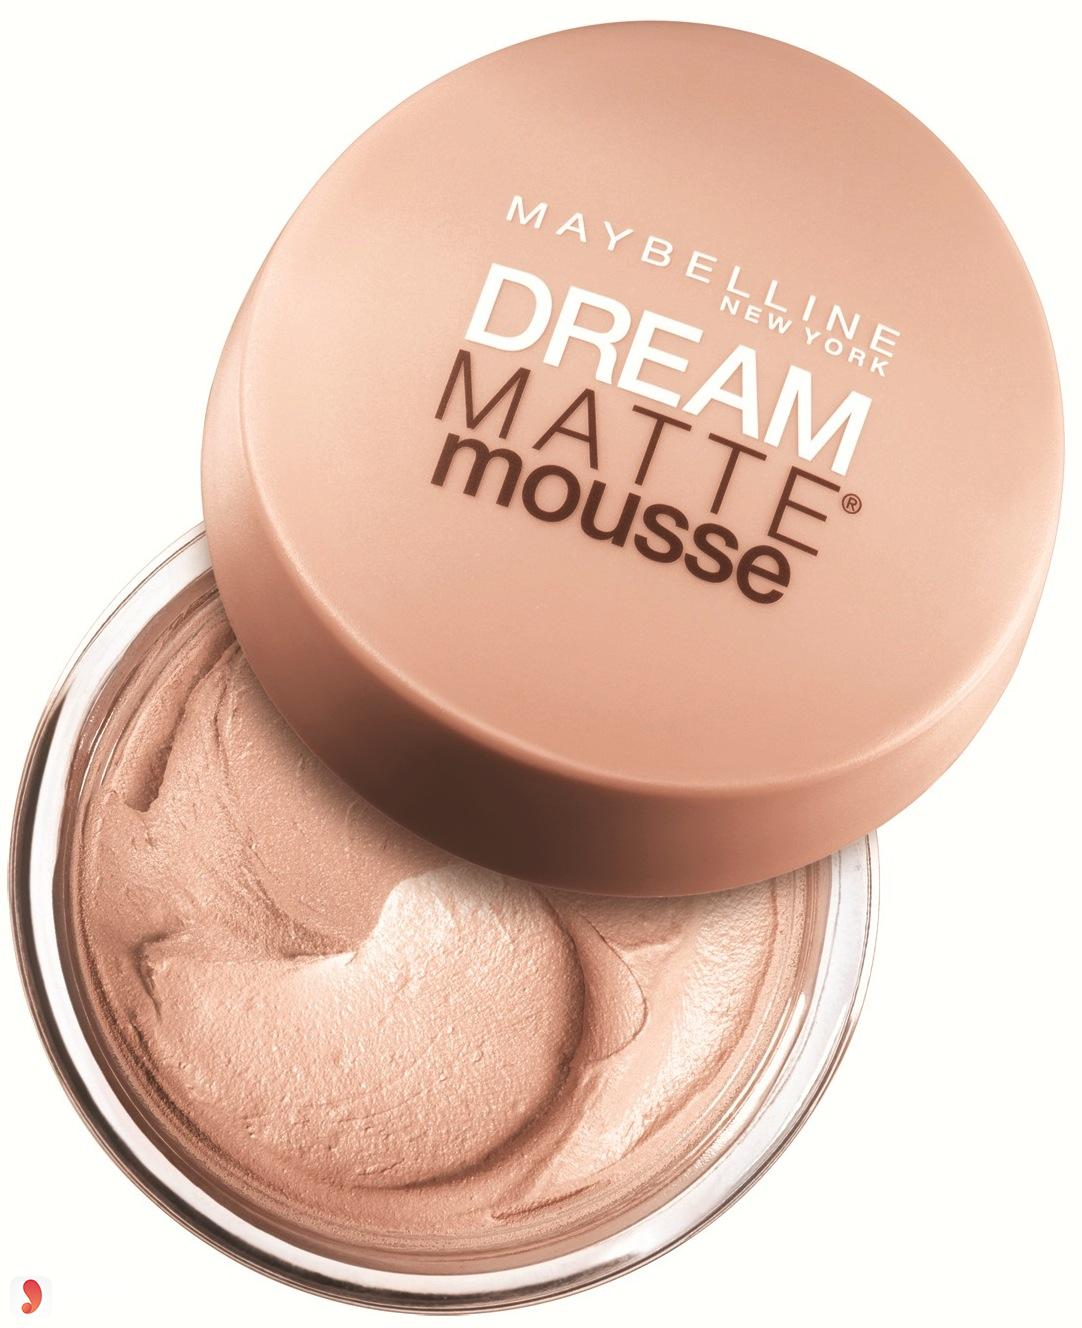 Review chi tiết sản phẩmPhấn Tươi Maybelline Dream Matte Mousse 4